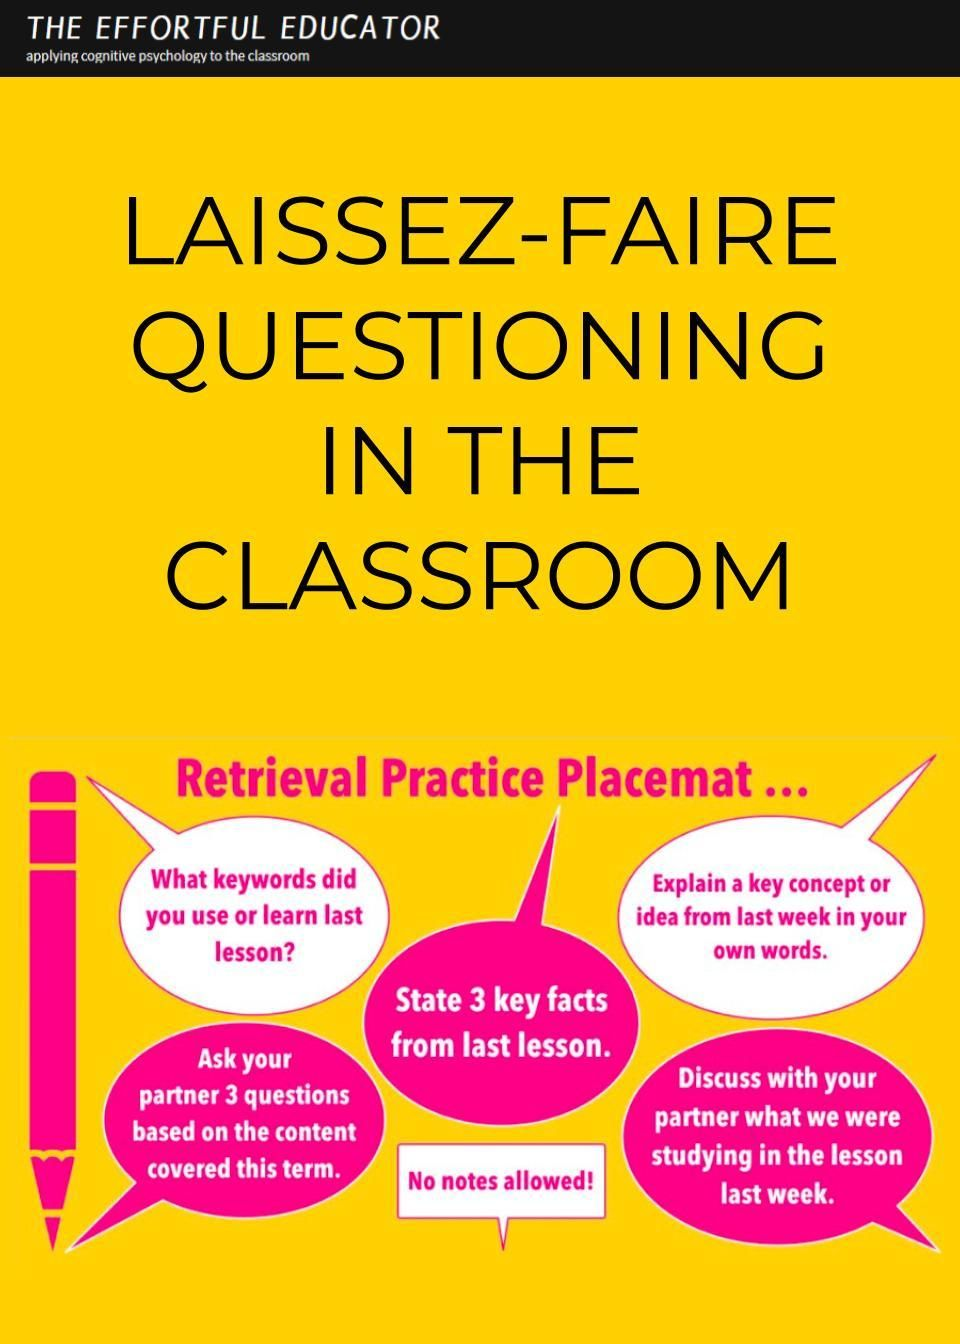 Laissez-faire Questioning in the Classroom - The Effortful Educator